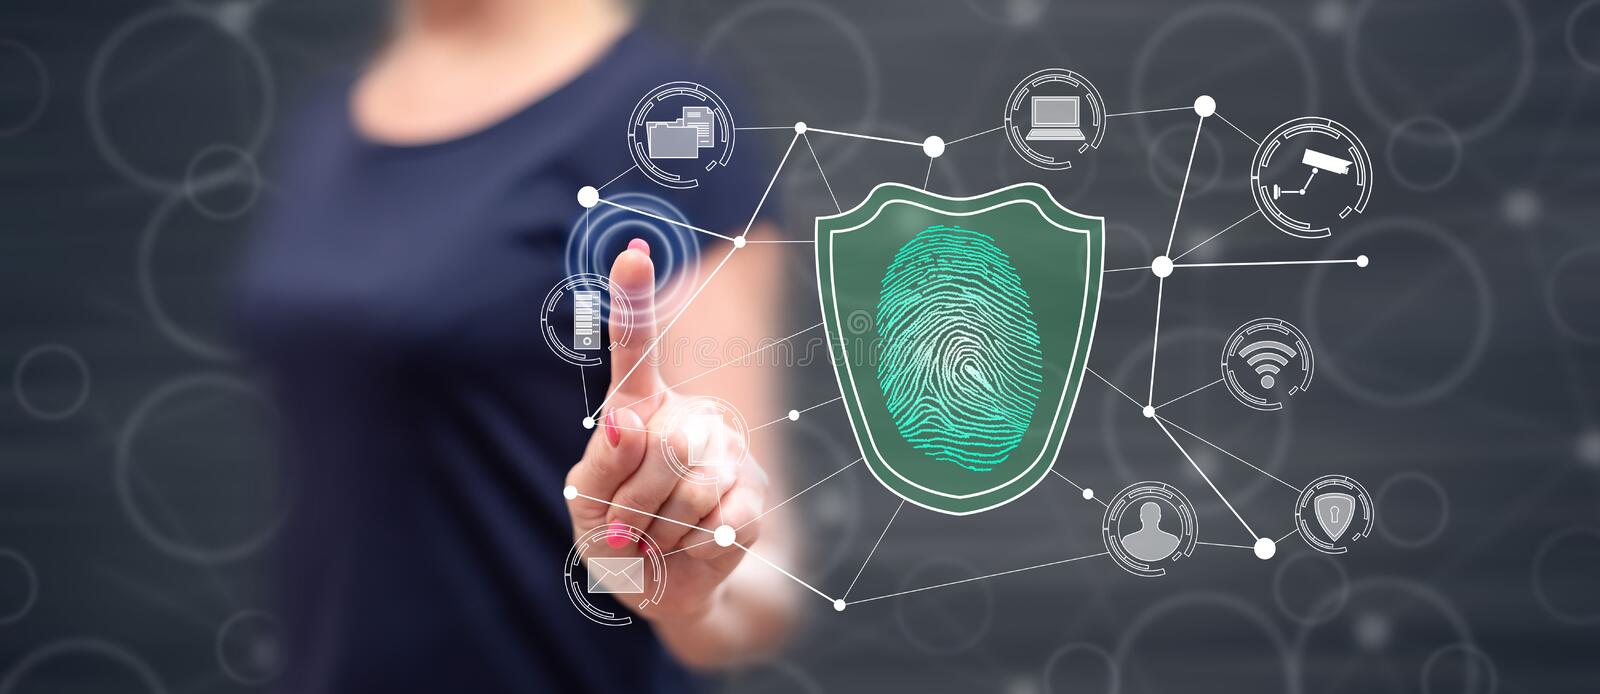 Woman touching a data security concept royalty free stock photos